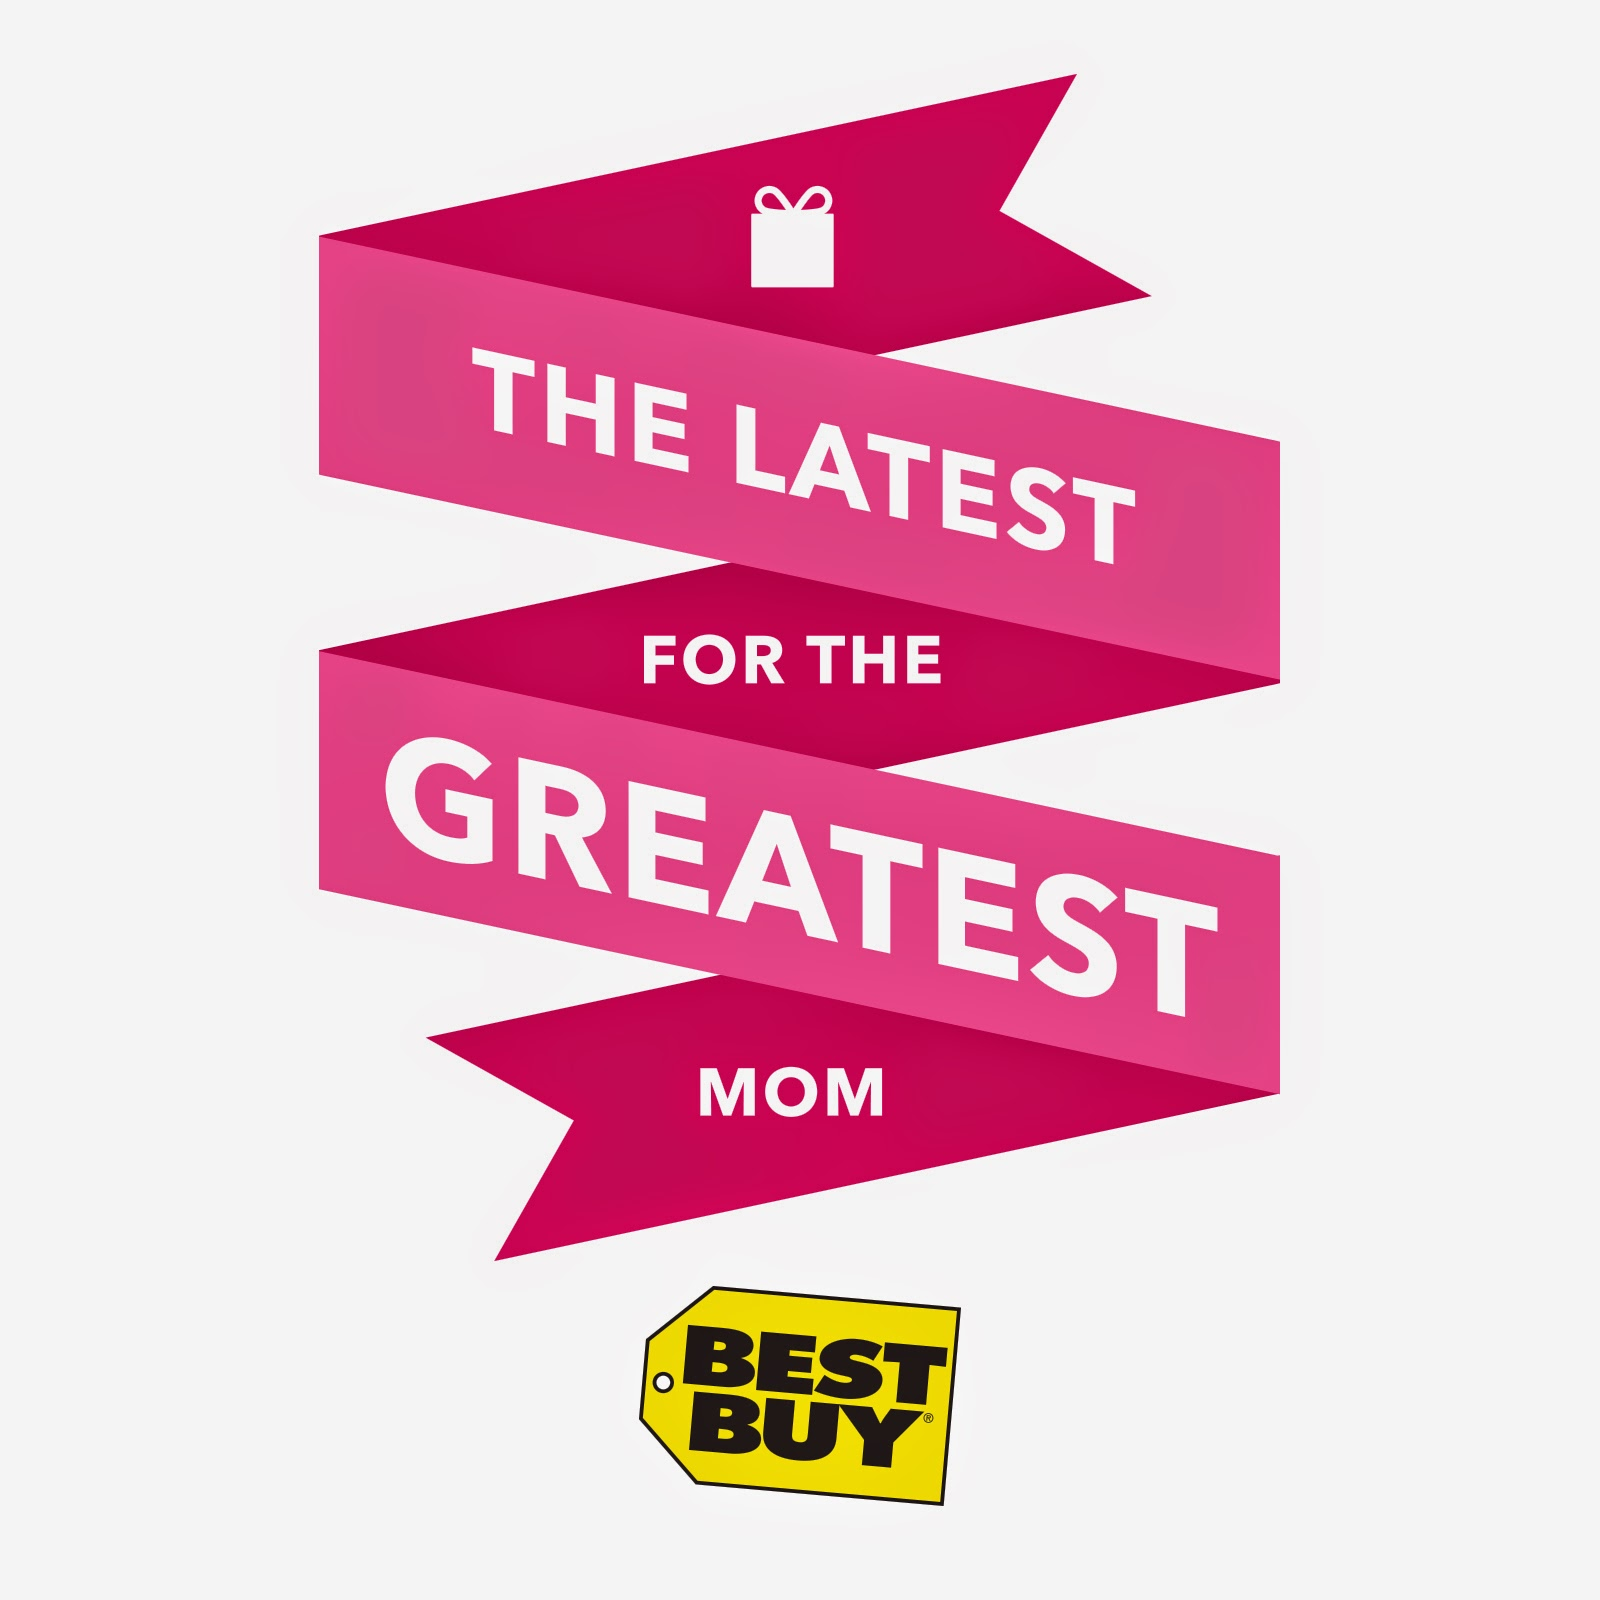 Mother's Day Gift Ideas from Best Buy #GreatestMom